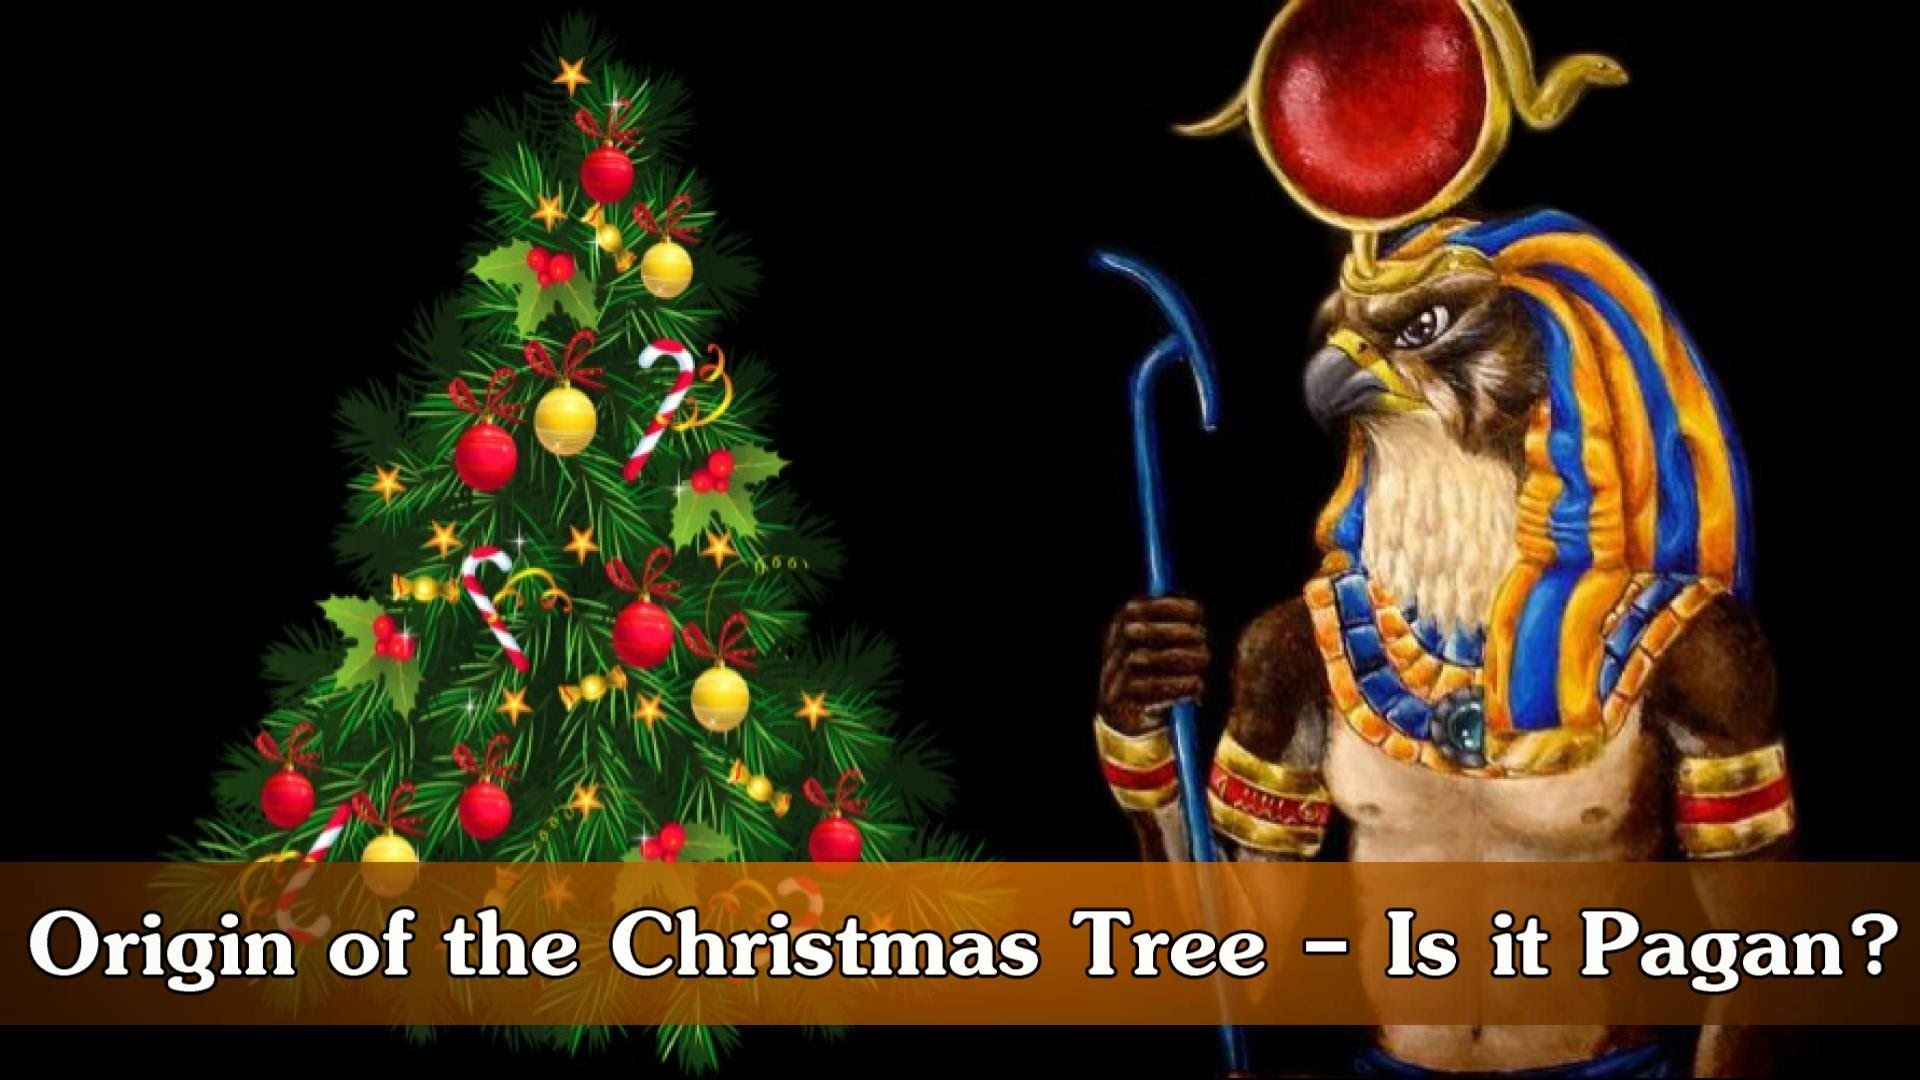 Origin Of The Christmas Tree - Is It Pagan?